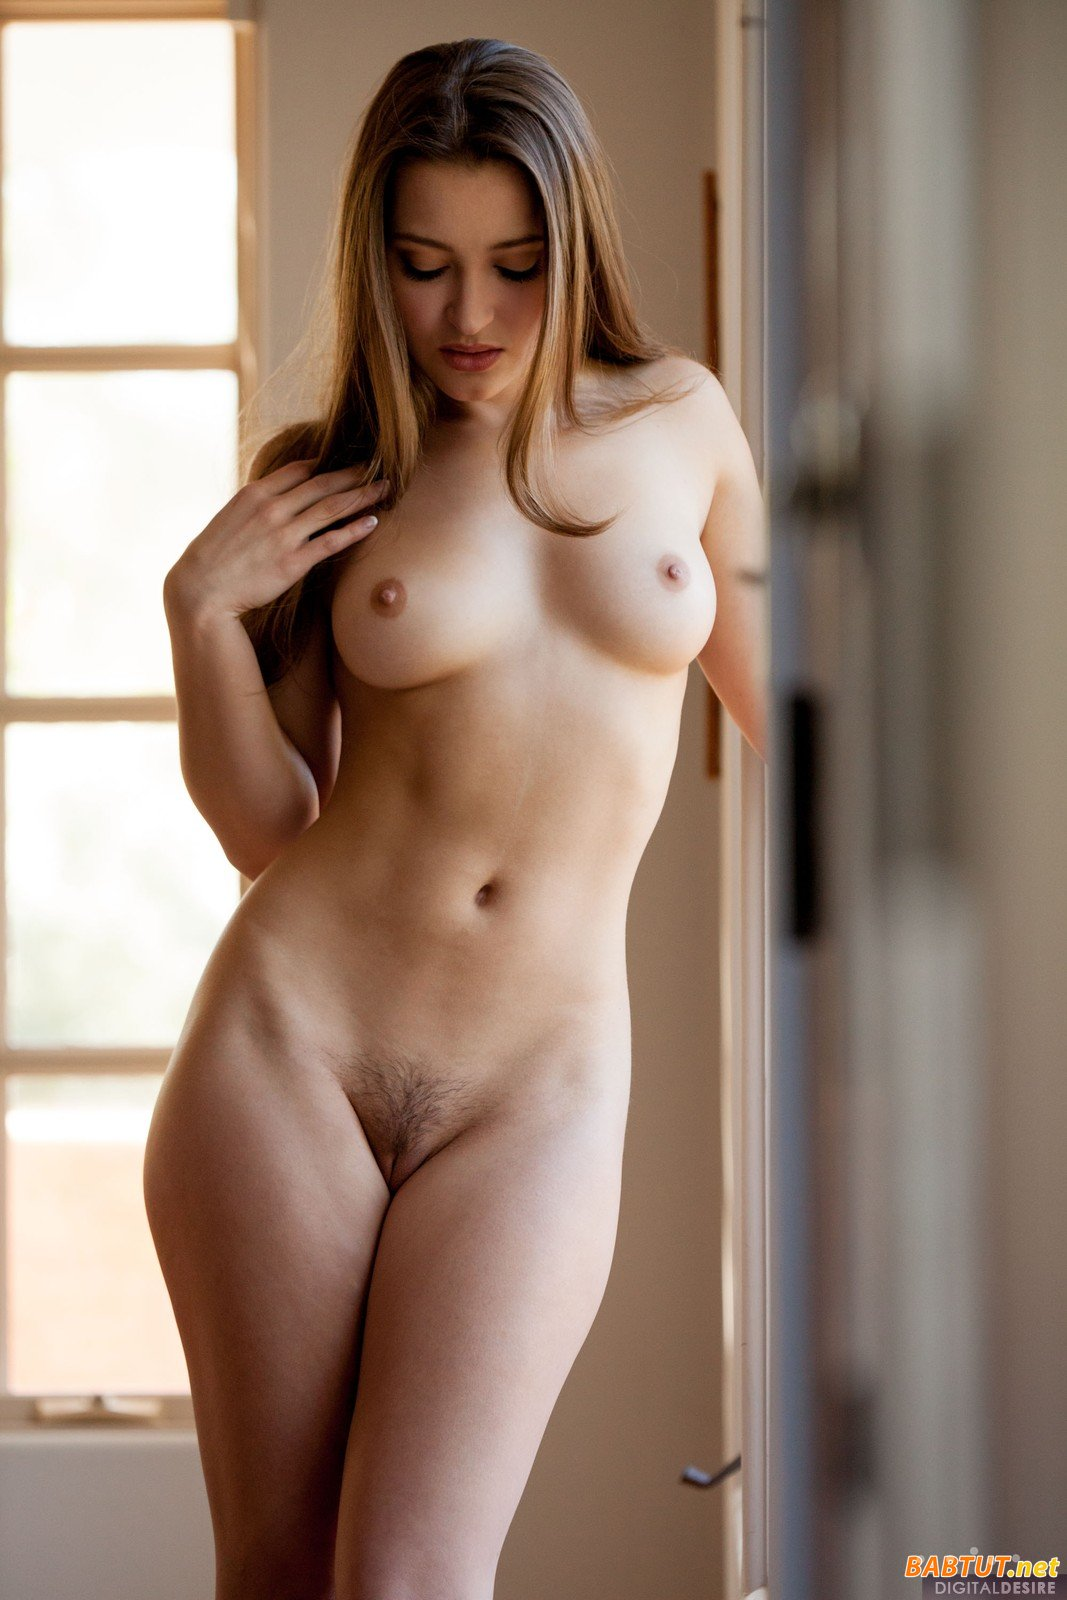 Naked photos free